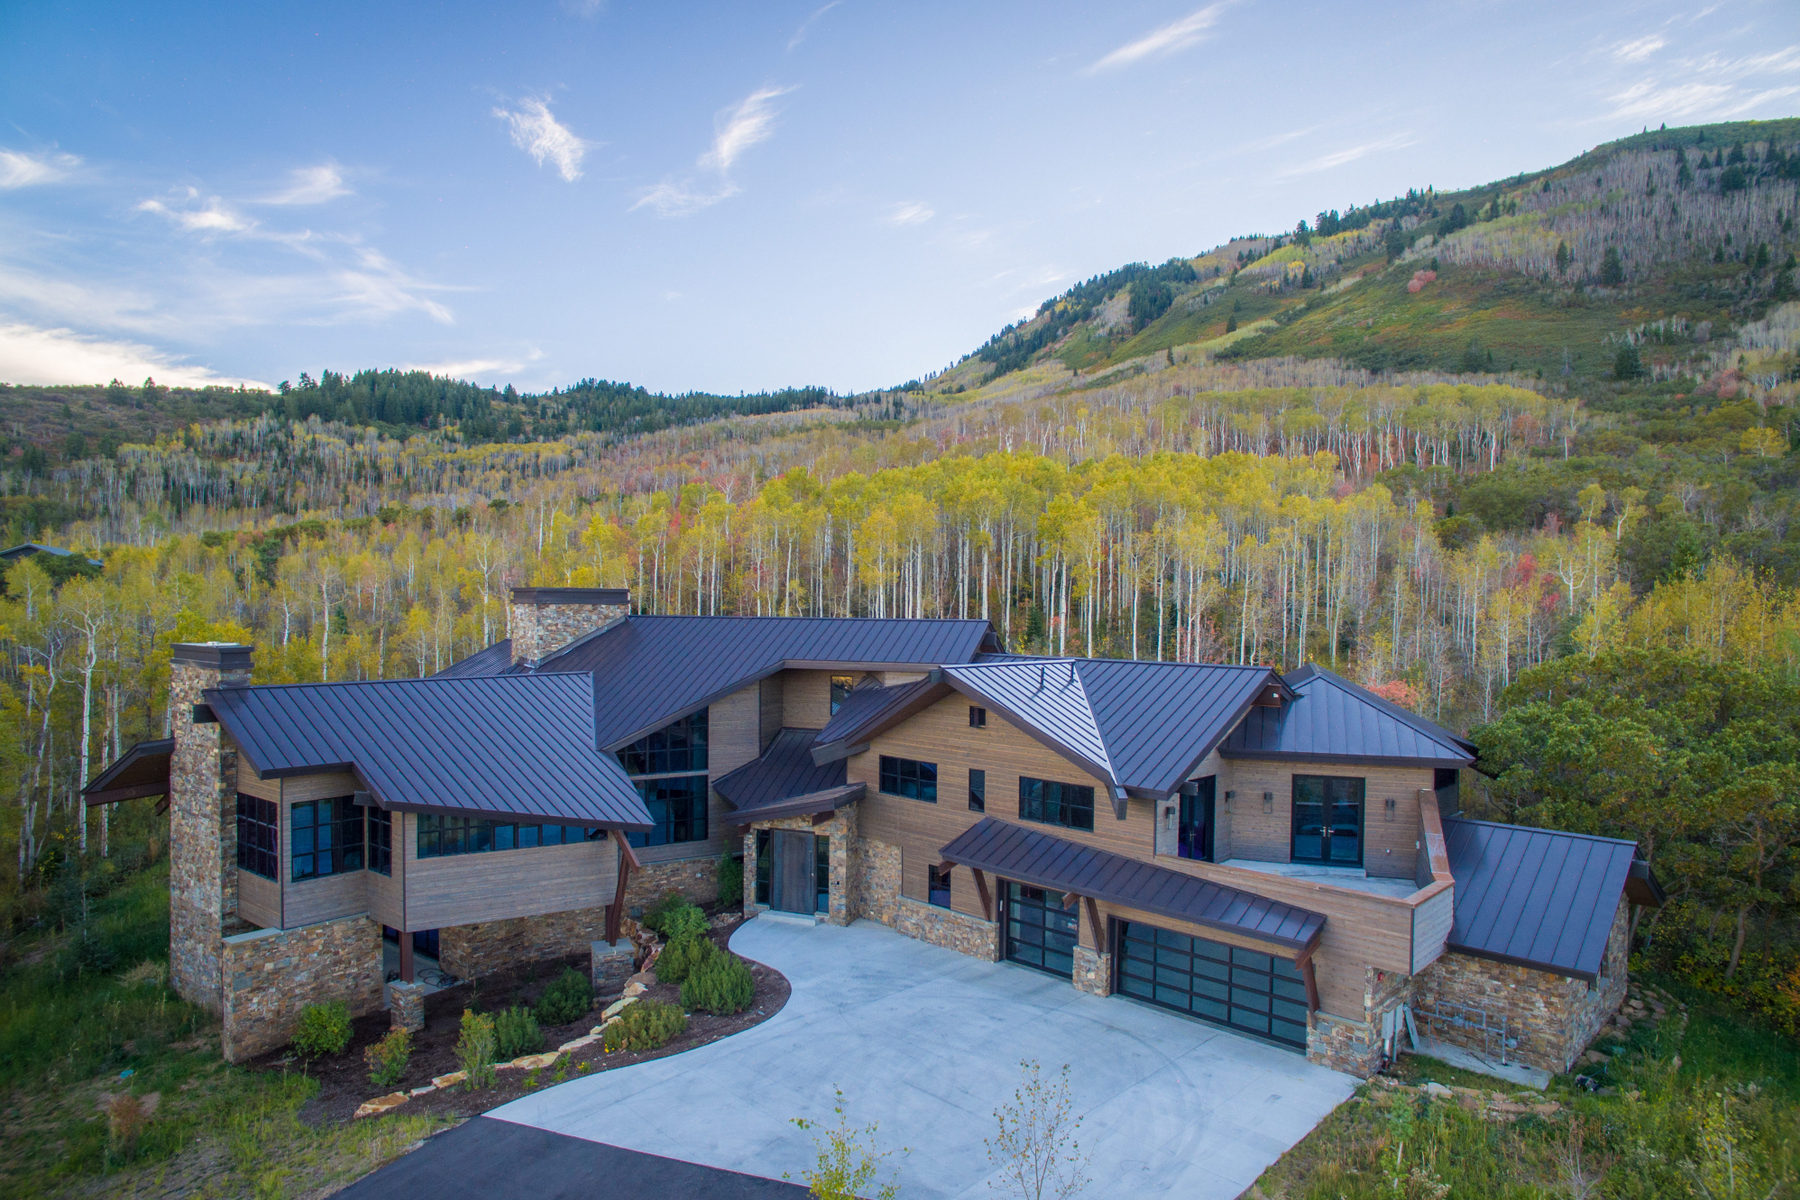 Moradia para Venda às Newly Finished Mountain Contemporary Masterpiece 21 Canyon Ct Park City, Utah 84060 Estados Unidos